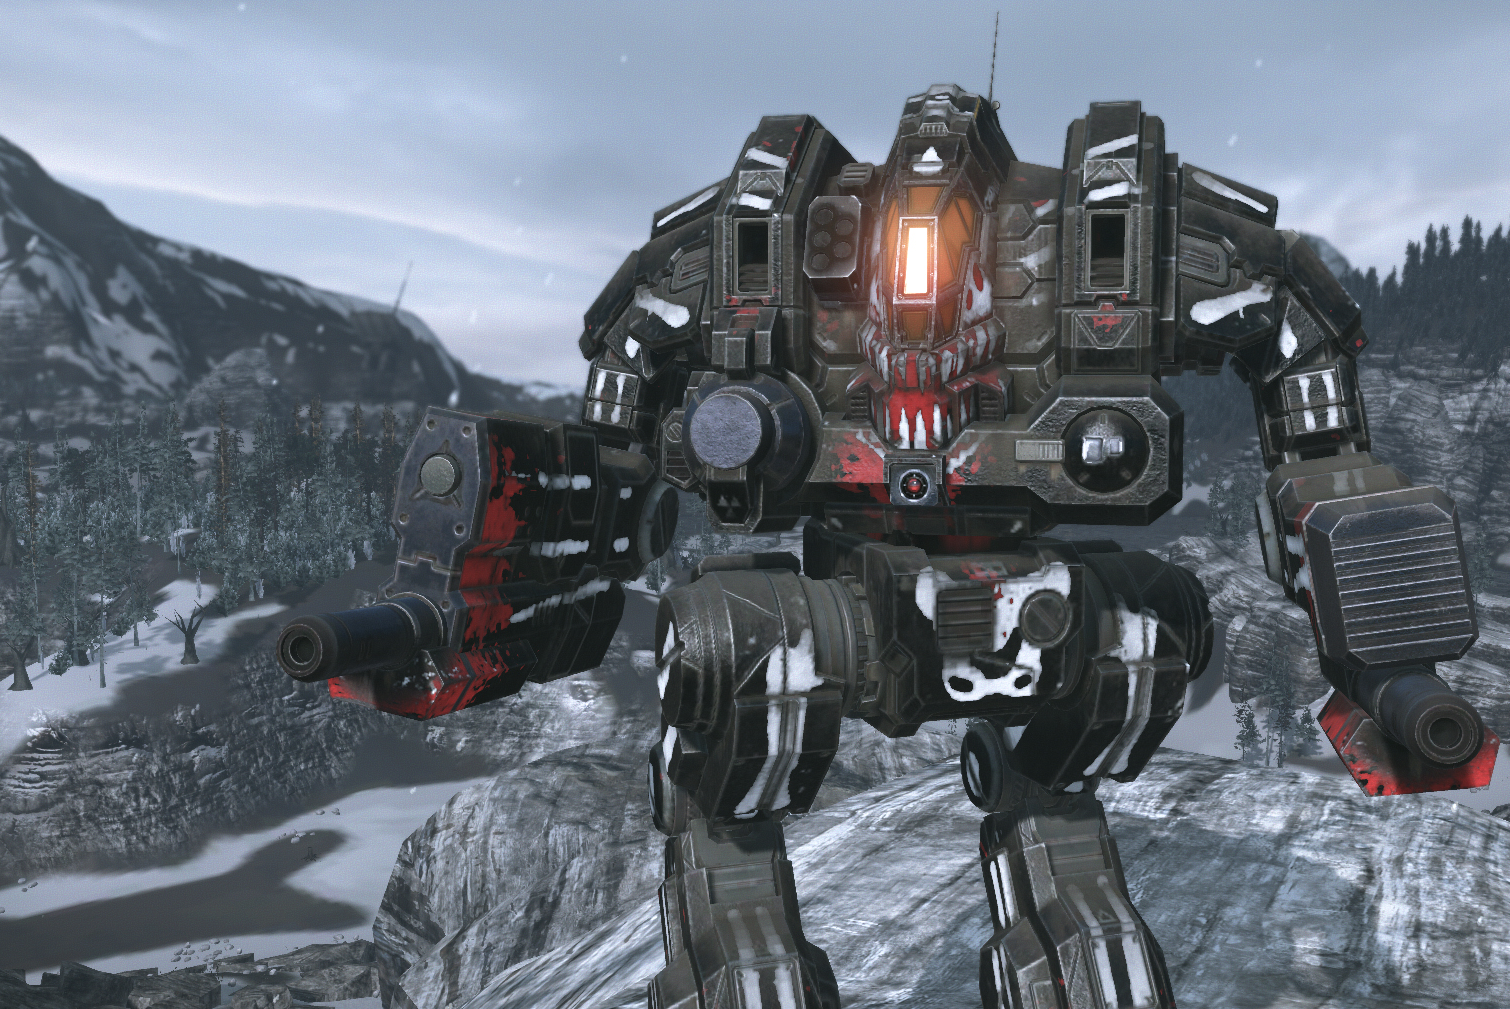 MechWarrior Online desktop wallpaper 9 of 13 Video Game Wallpapers 1510x1009